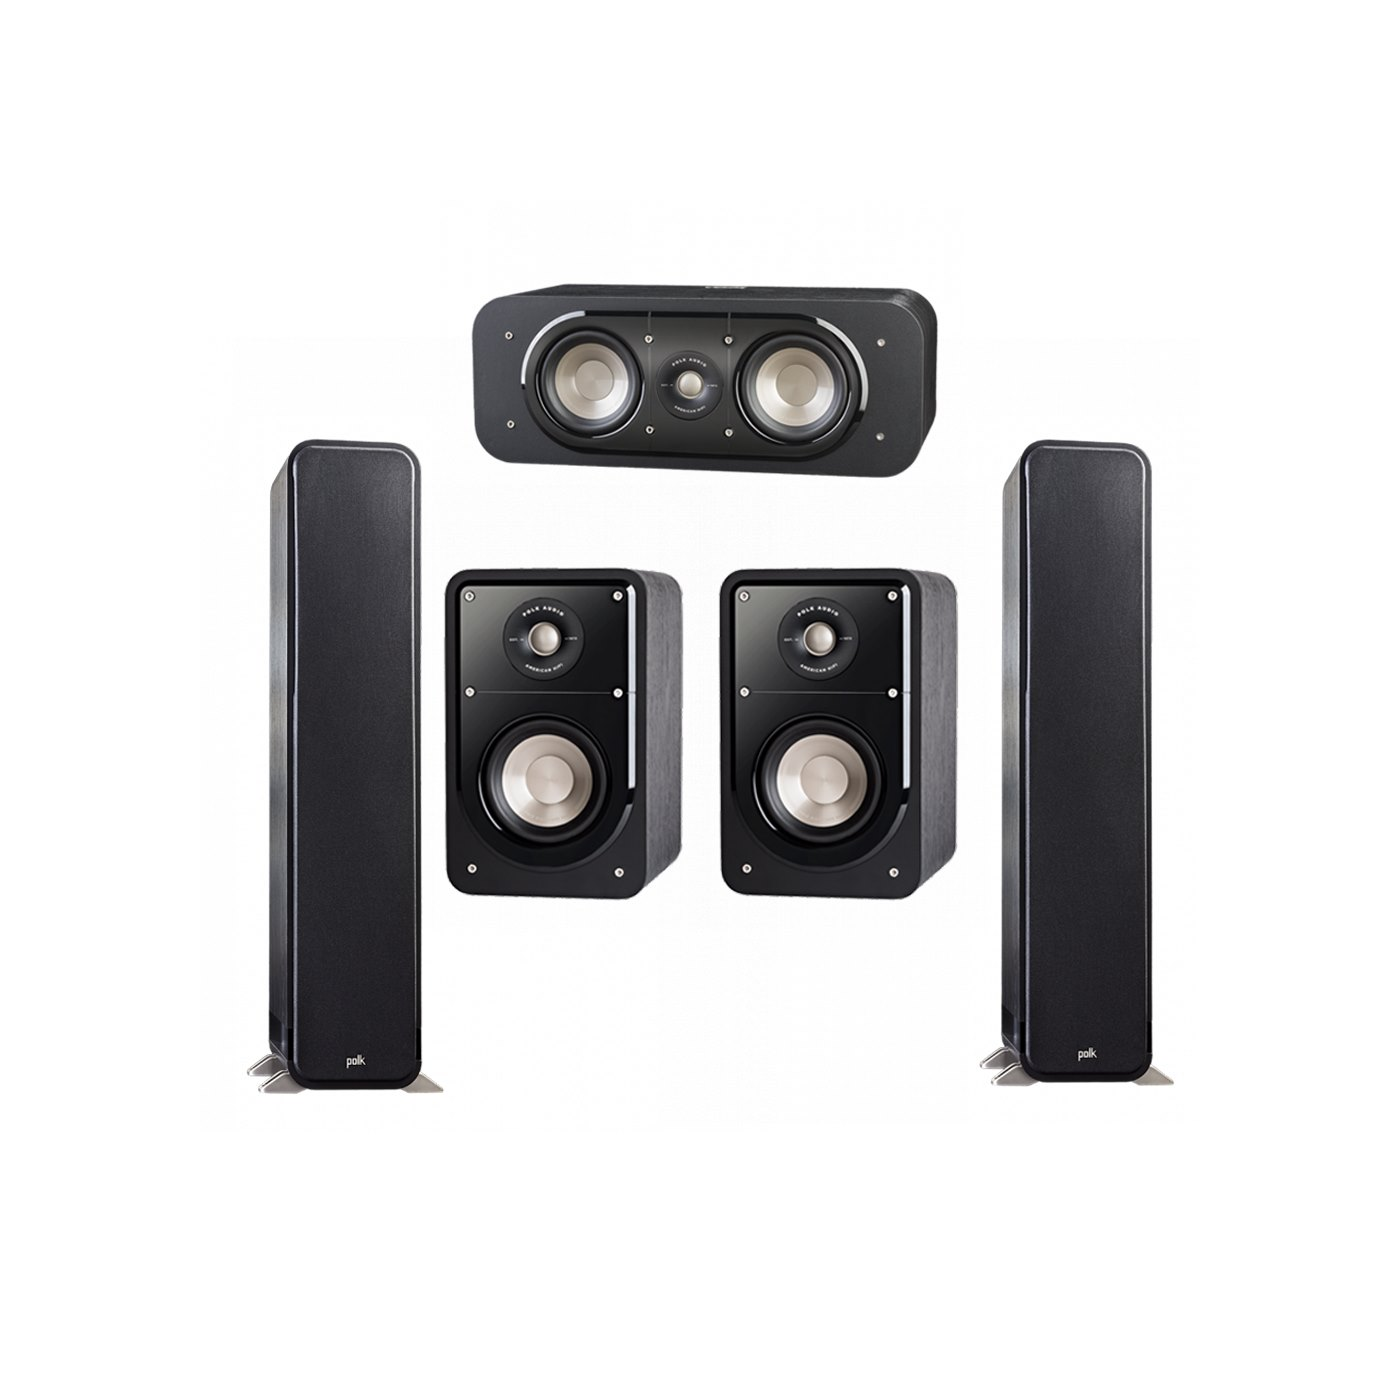 Polk Audio Signature 5.0 System with 2 S55 Tower Speaker, 1 Polk S30 Center Speaker, 2 Polk S15 Bookshelf Speaker